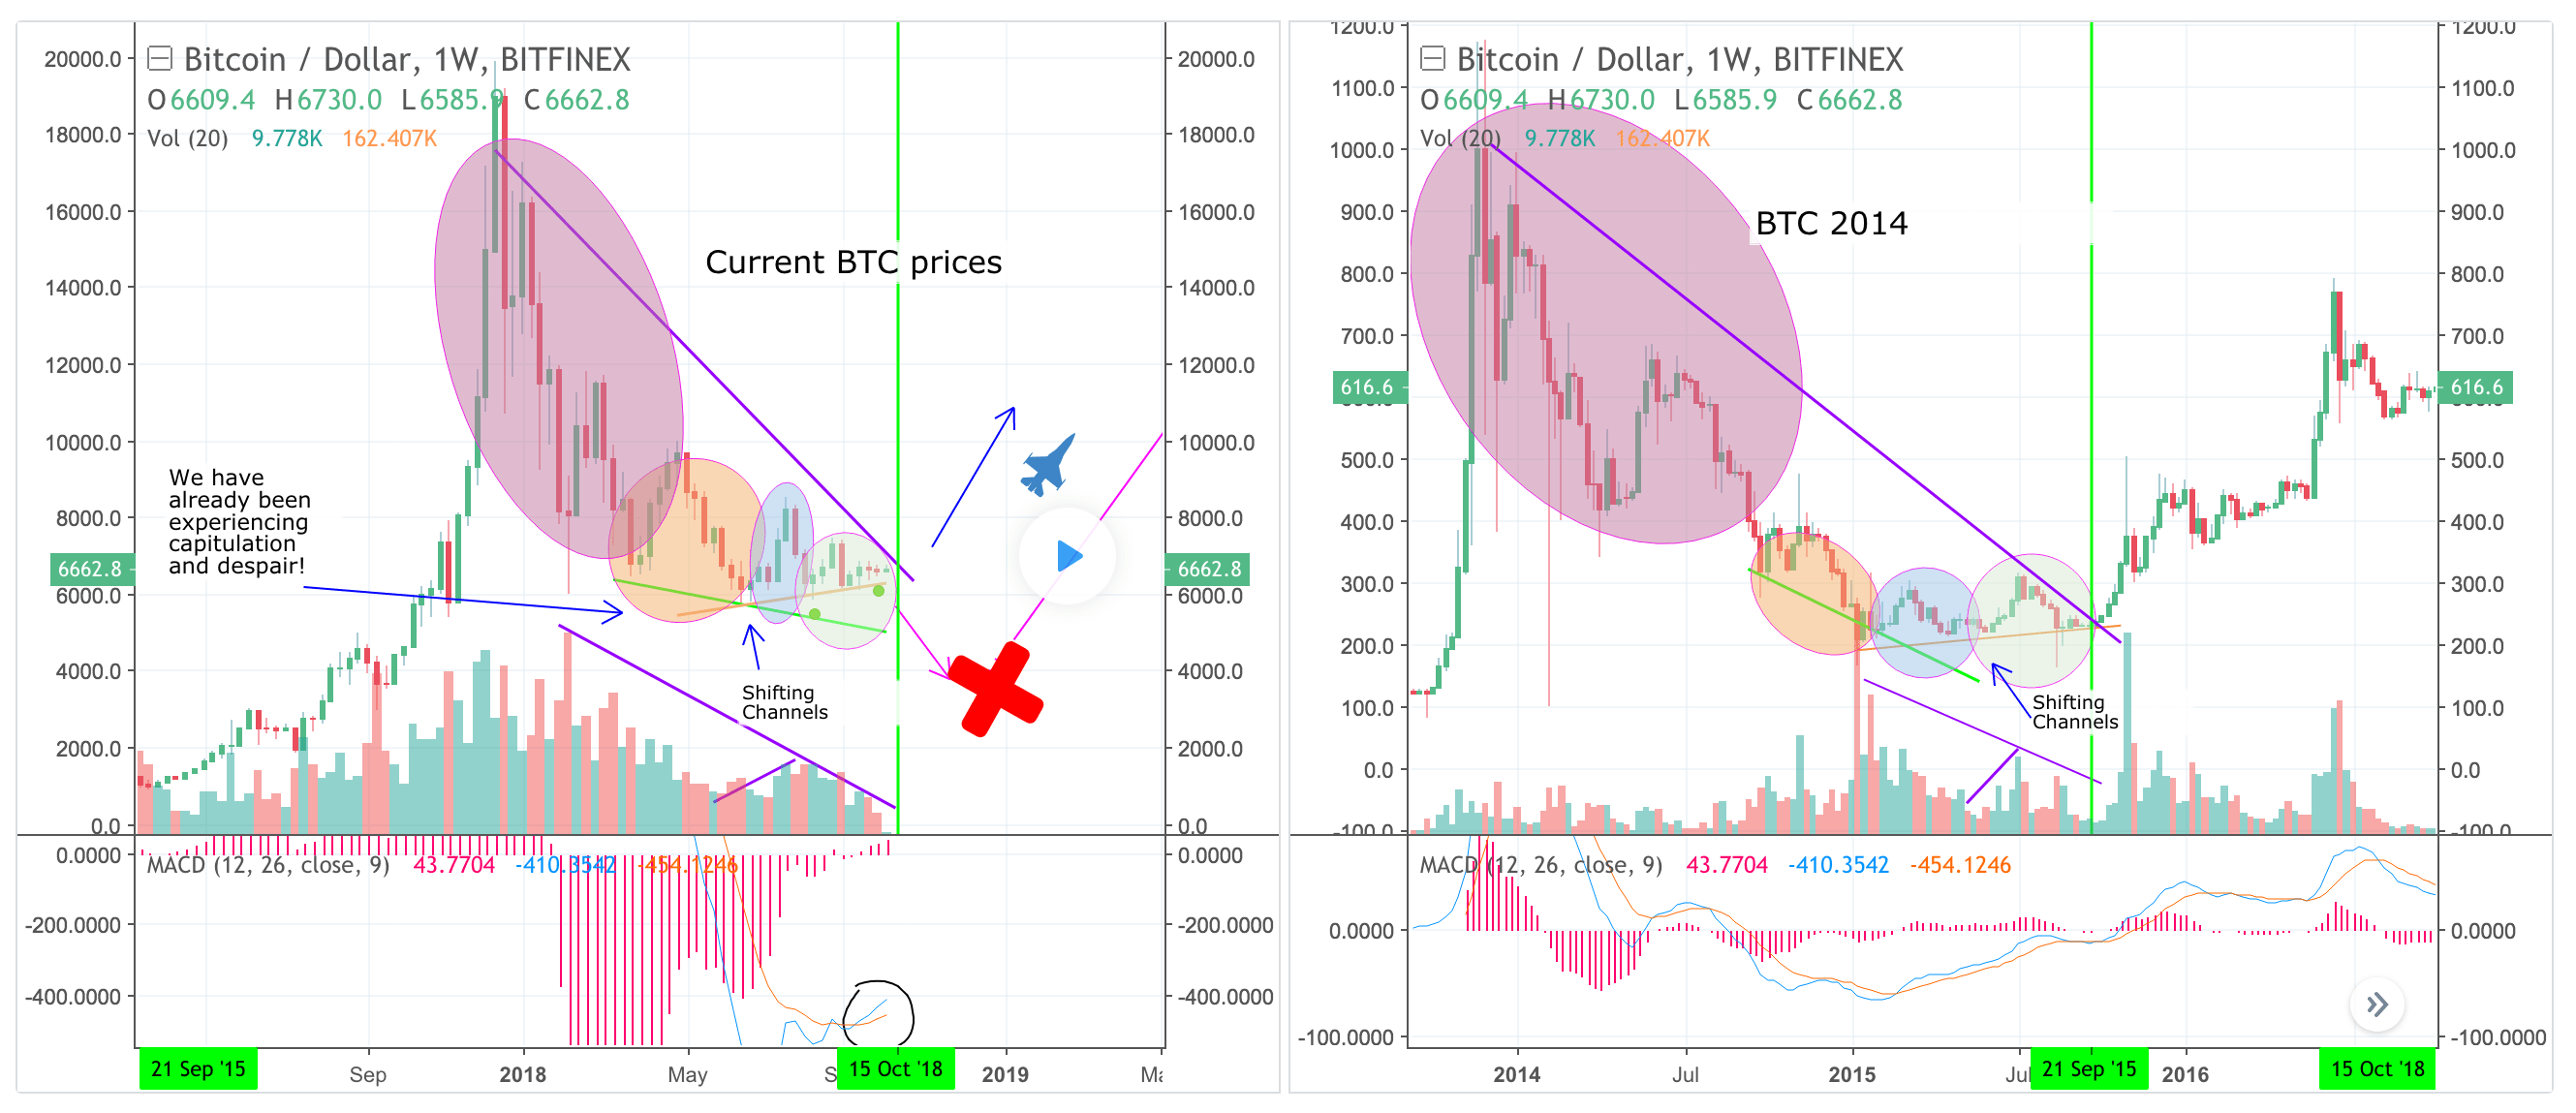 Bitcoin movement analysis